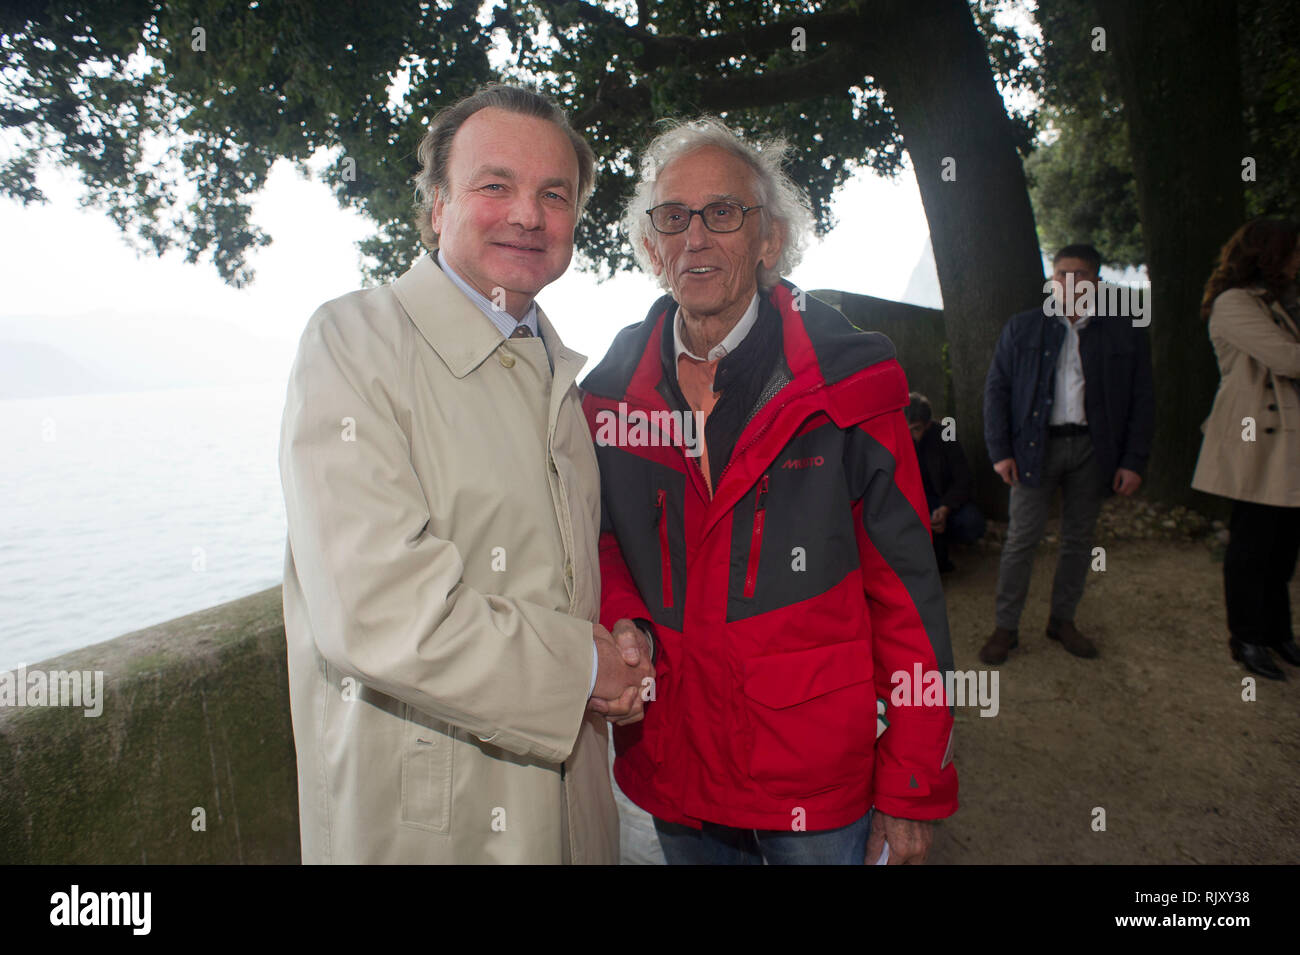 Italy, Lombardy, Sulzano Christ Vladimirov Yavakev in the Iseo lake. In the picture on the island of s. Paolo with Pietro Gussalli Beretta - Stock Image